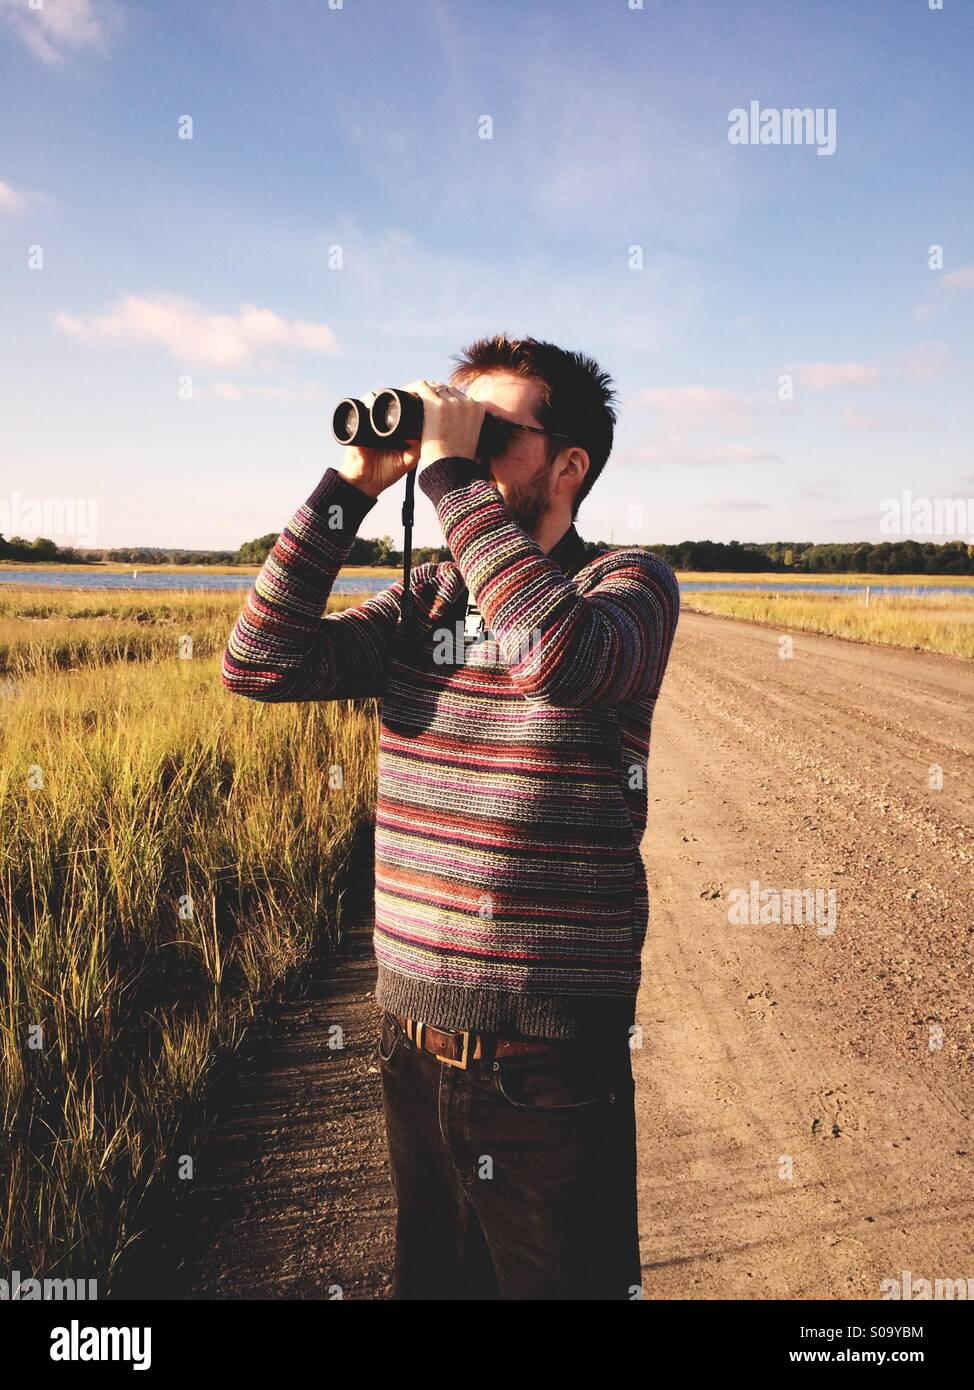 A man birdwatching by a salt marsh in Connecticut, USA. - Stock Image